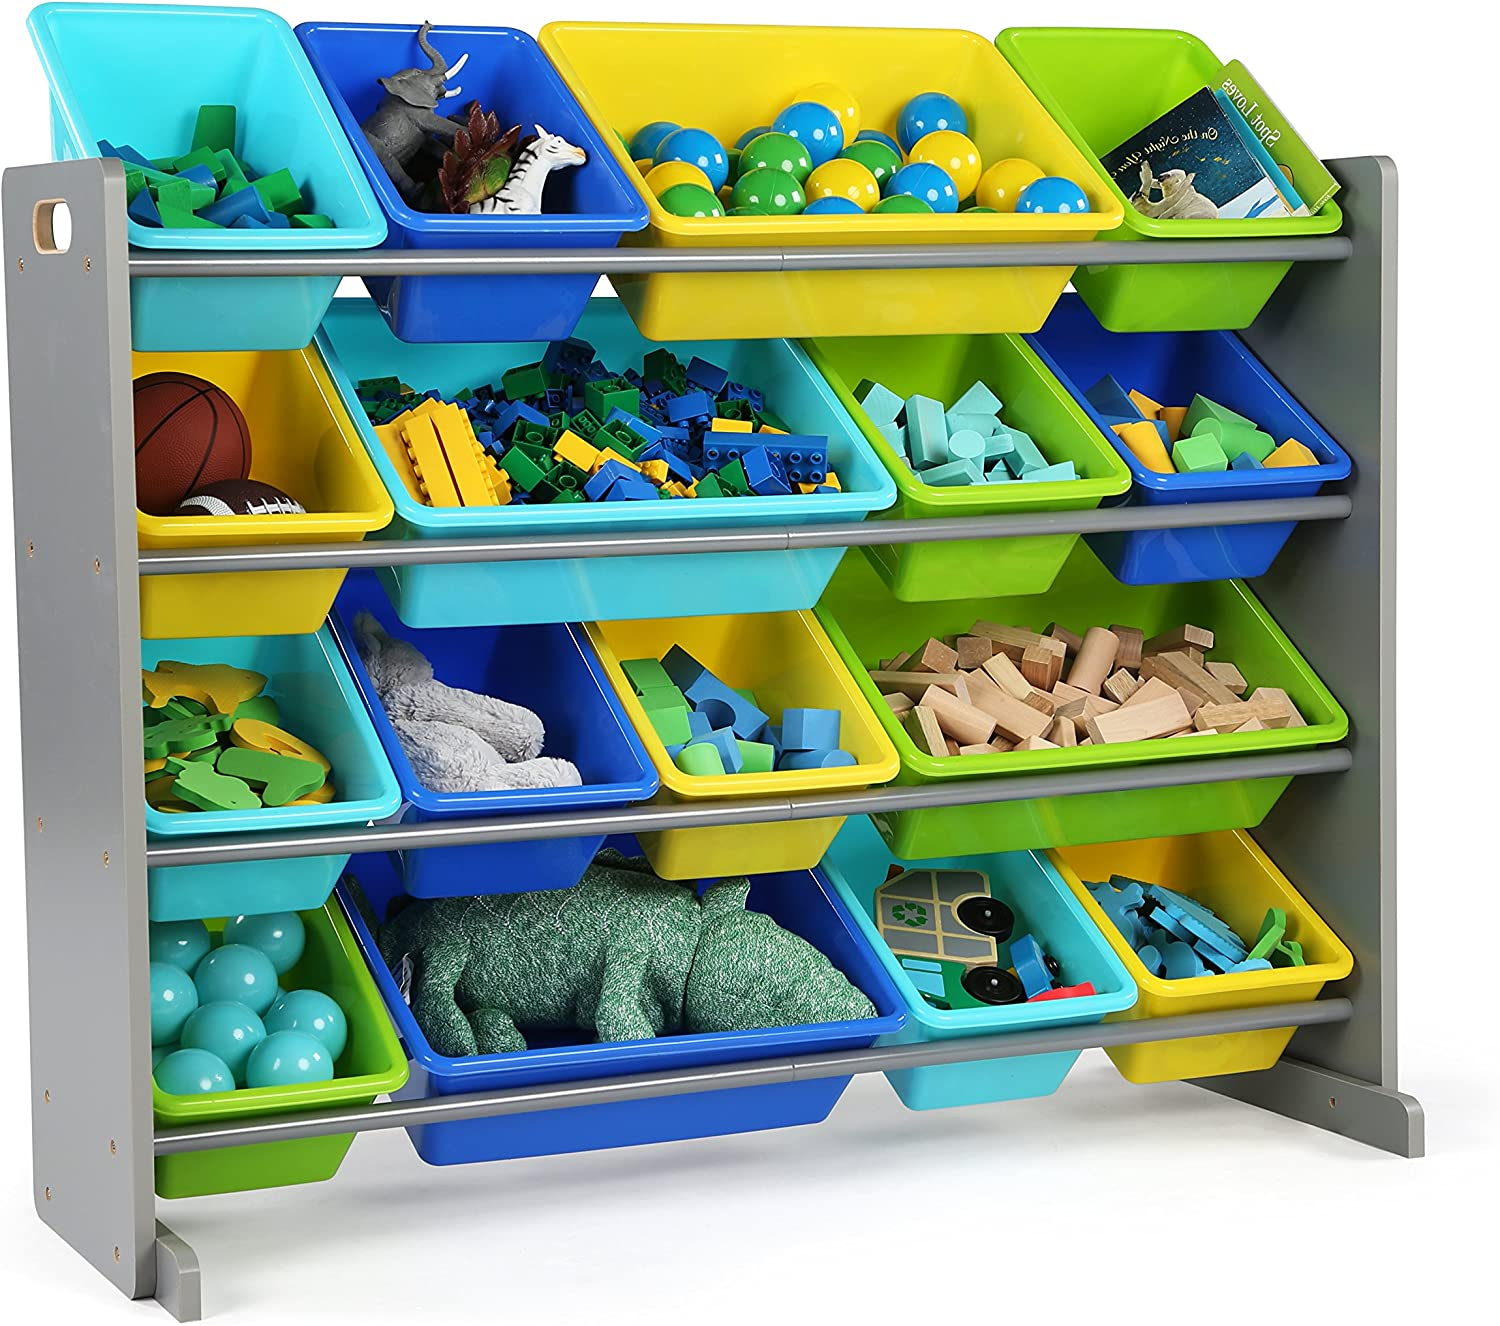 Tot Tutors WO498 Elements Collection Wood Toy Storage Organizer, X-Large, Grey bluees